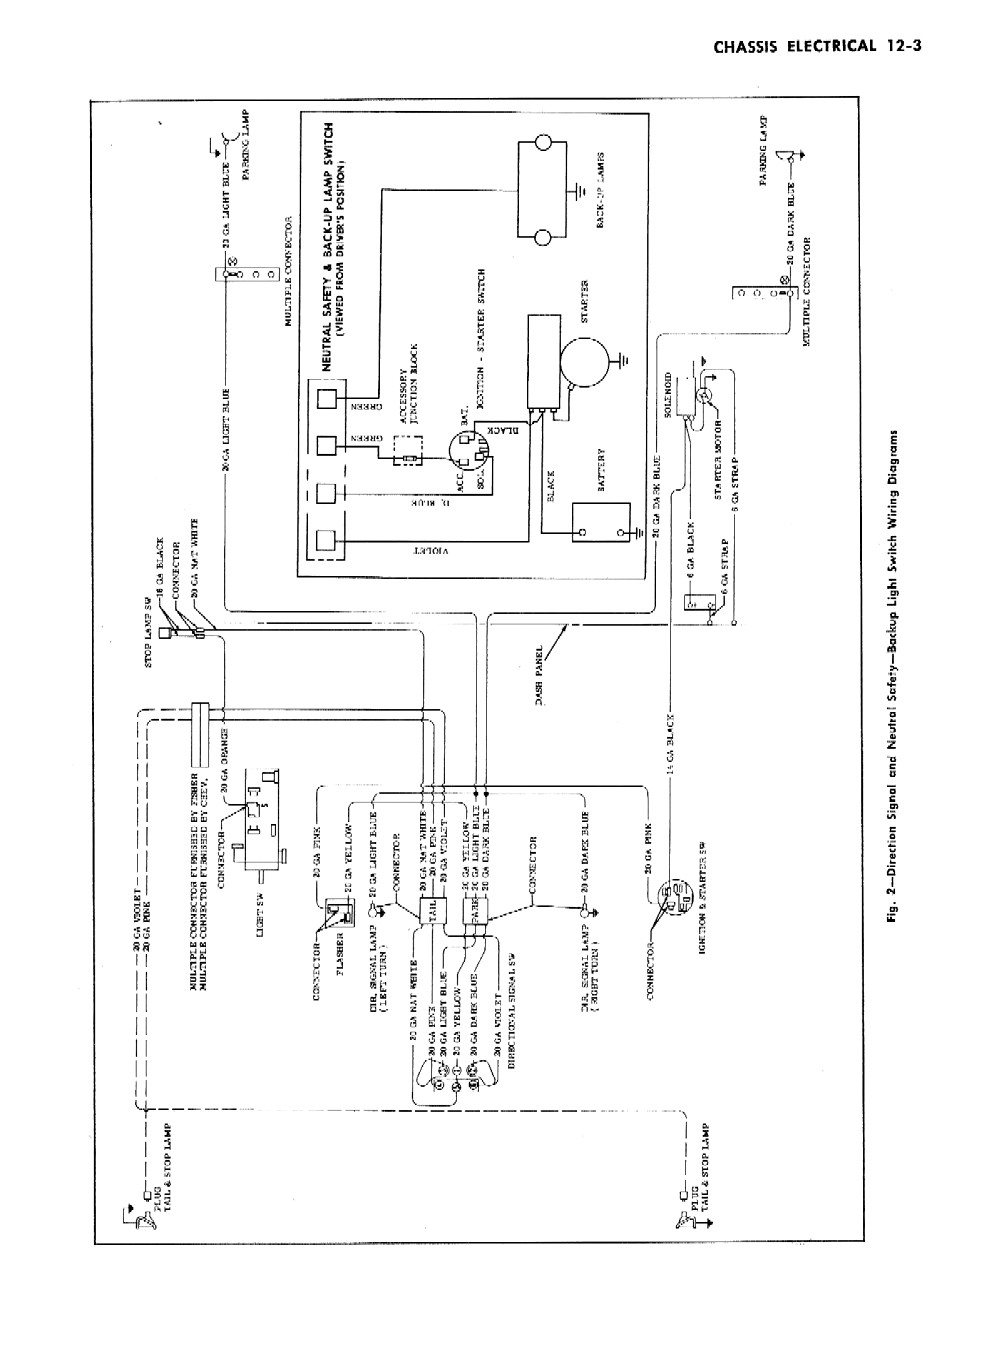 55 Chevy Pickup Wiring Diagram Another Blog About In Addition Vw Beetle Also Electrical Color Get Free Image